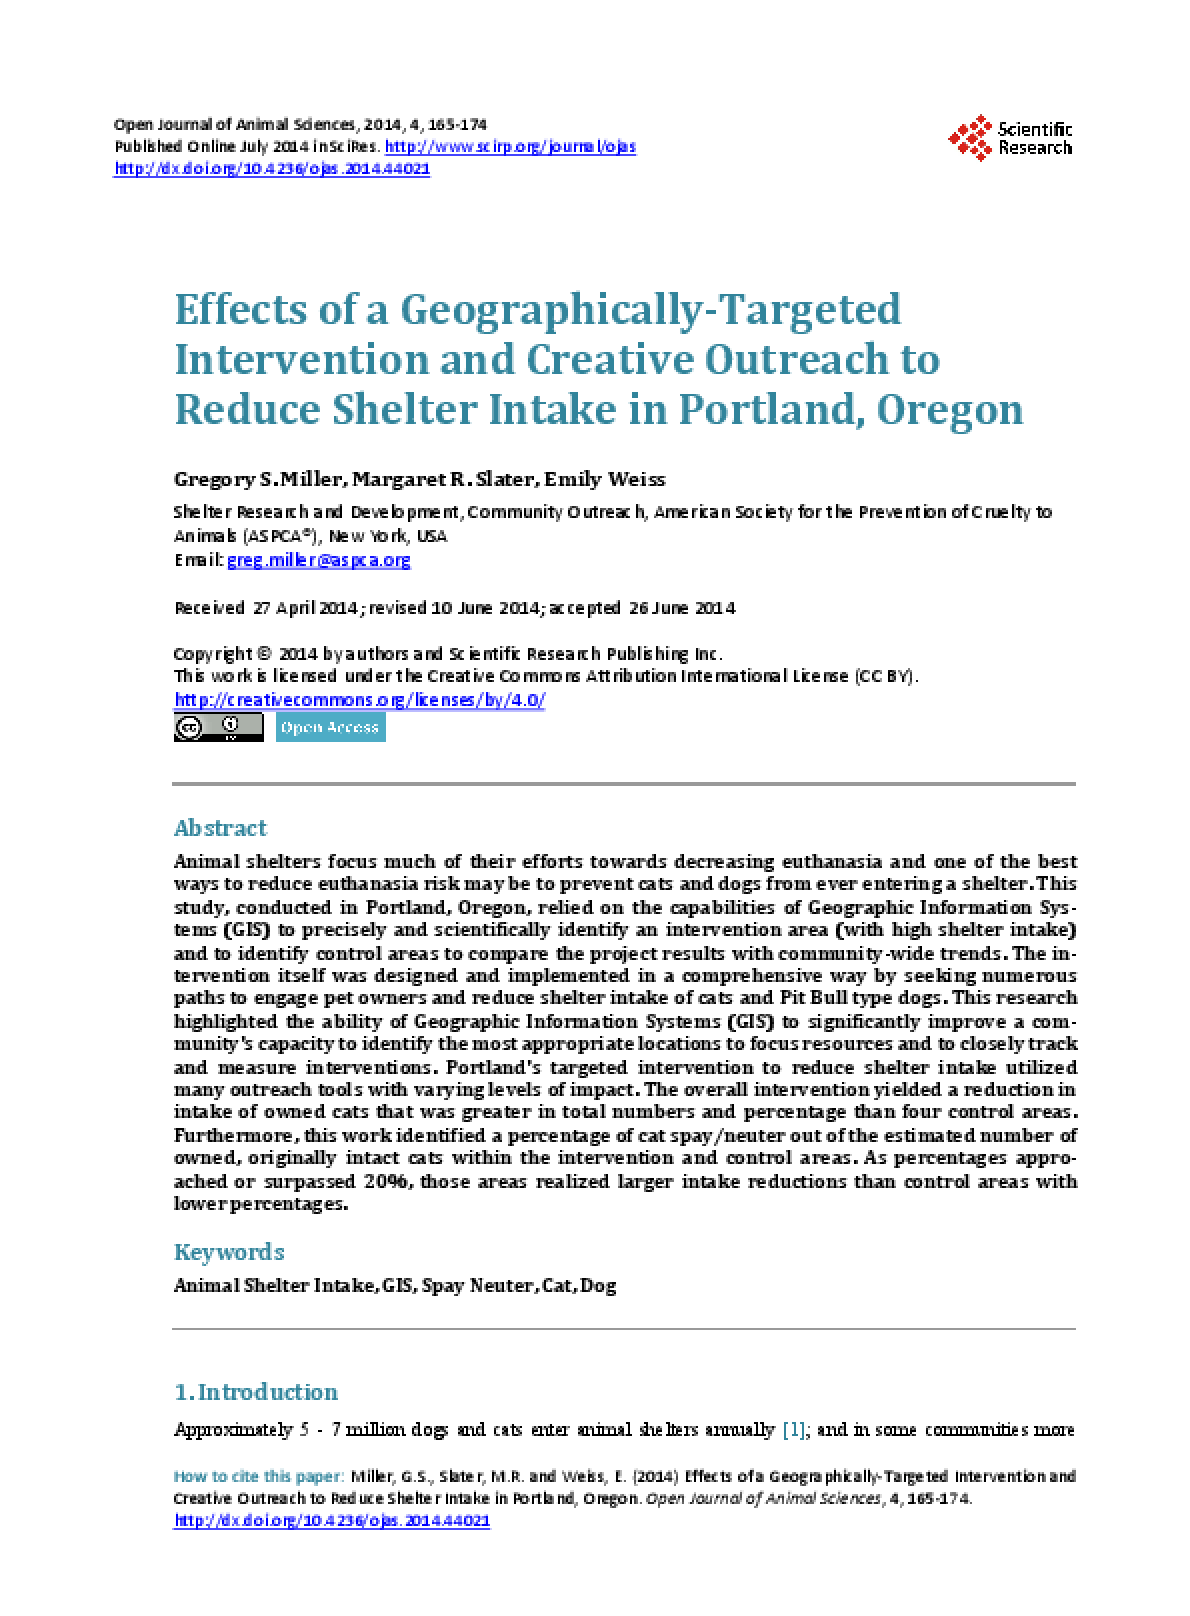 Effects of a Geographically-Targeted Intervention and Creative Outreach to Reduce Shelter Intake in Portland, Oregon